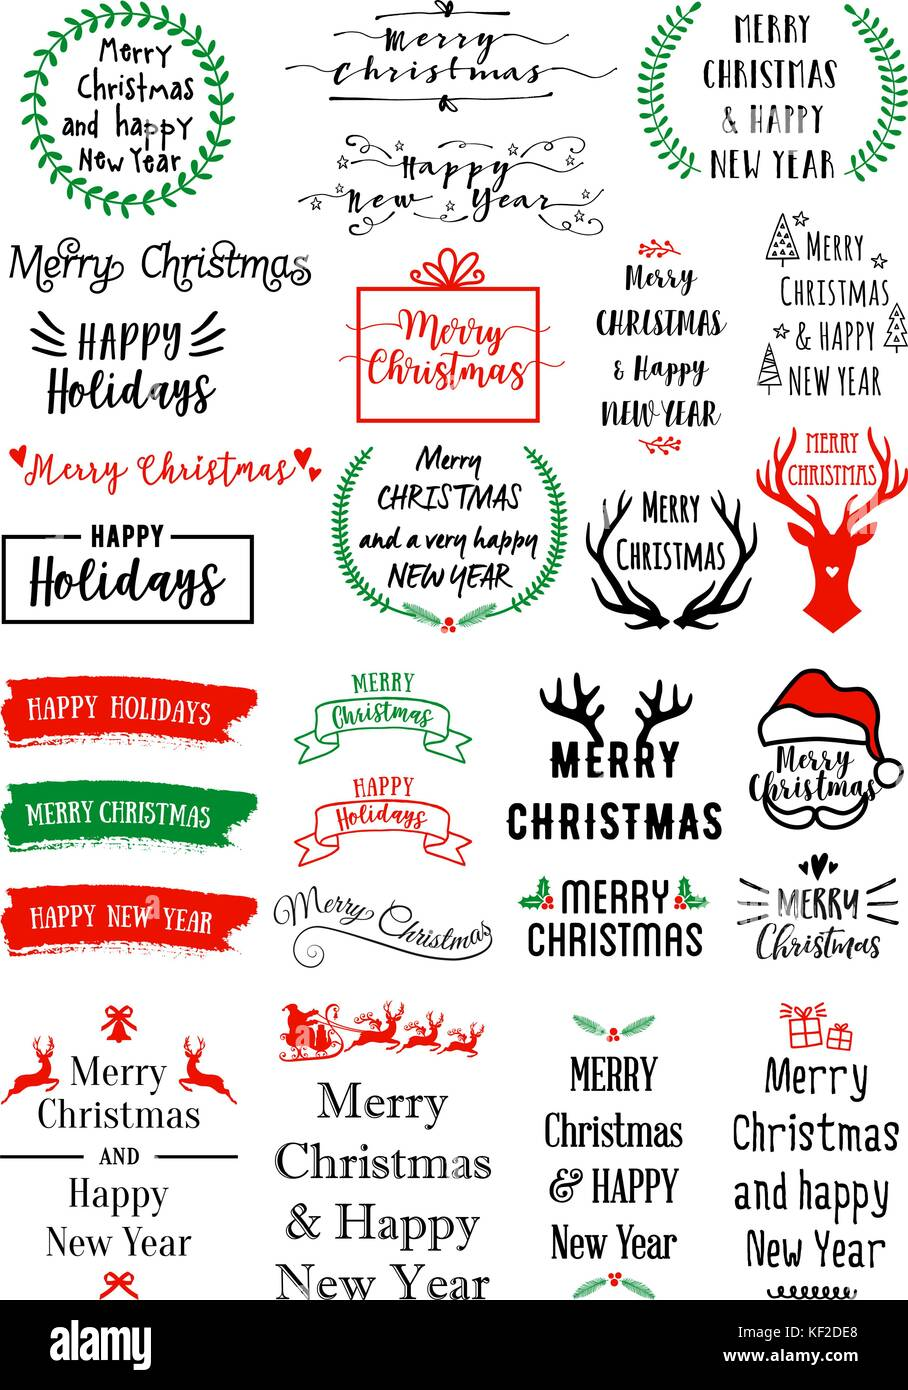 Christmas text overlays for cards, banners, tags, set of vector graphic design elements - Stock Image